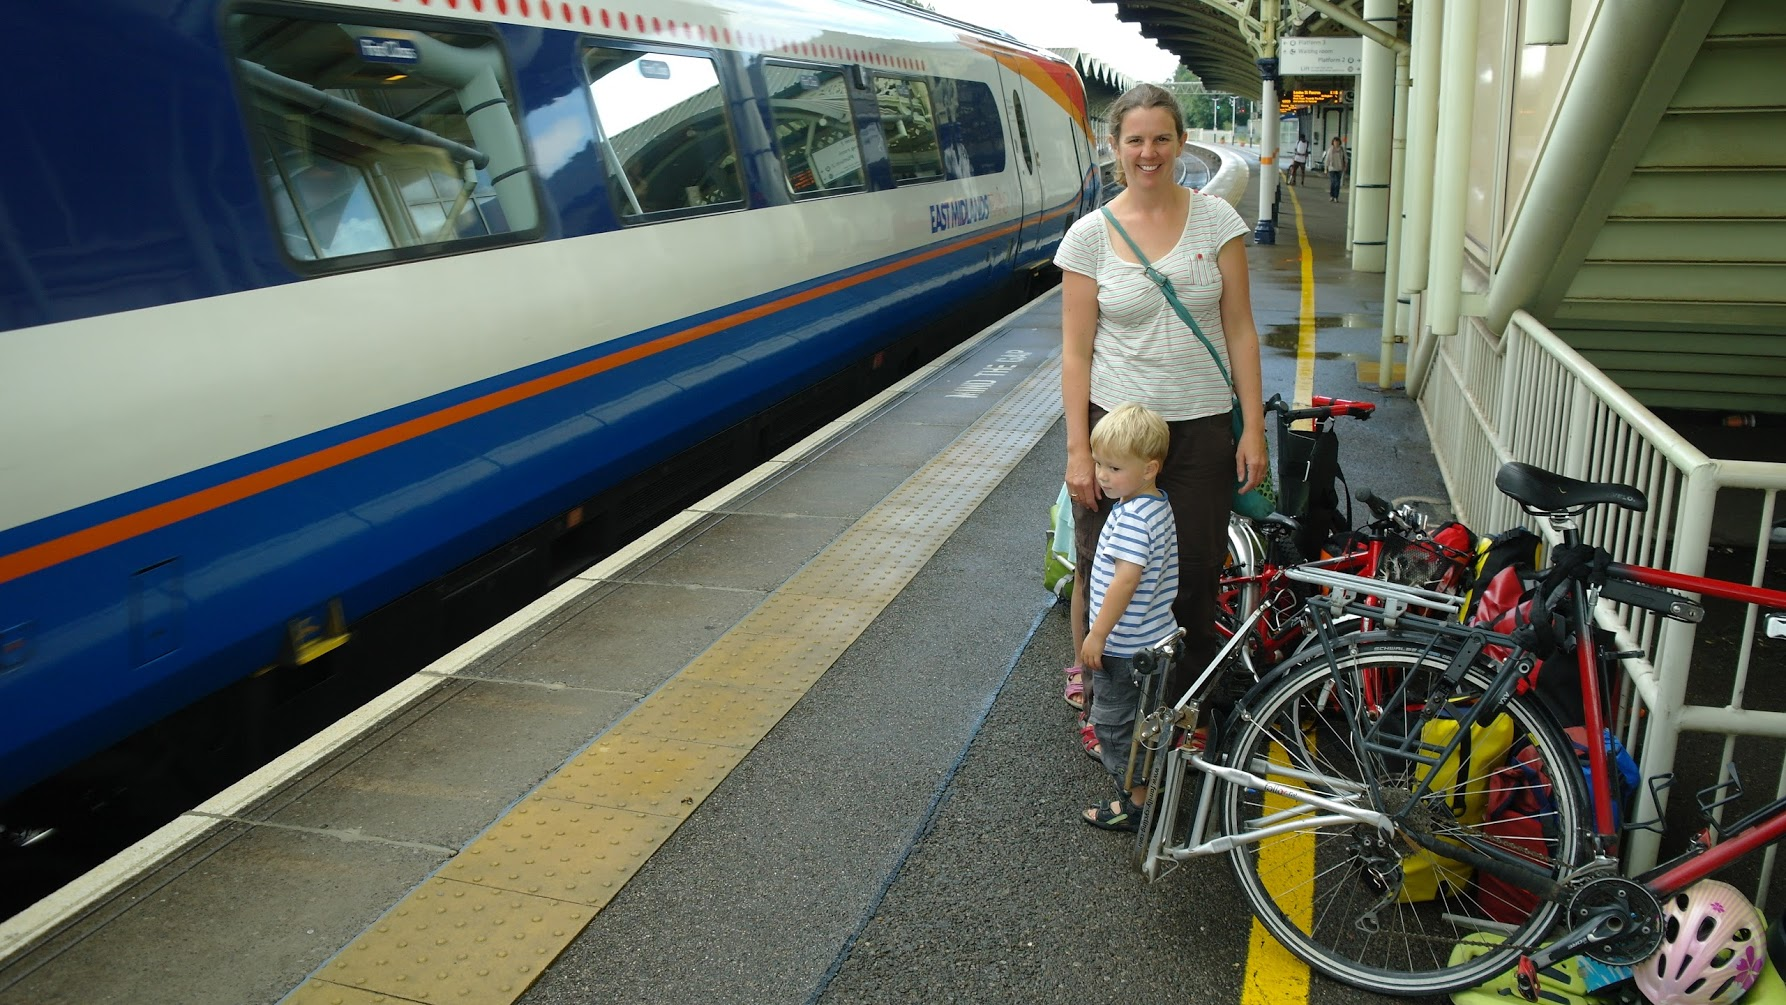 Getting ready at Kettering station for taking bicycles on the train with kids